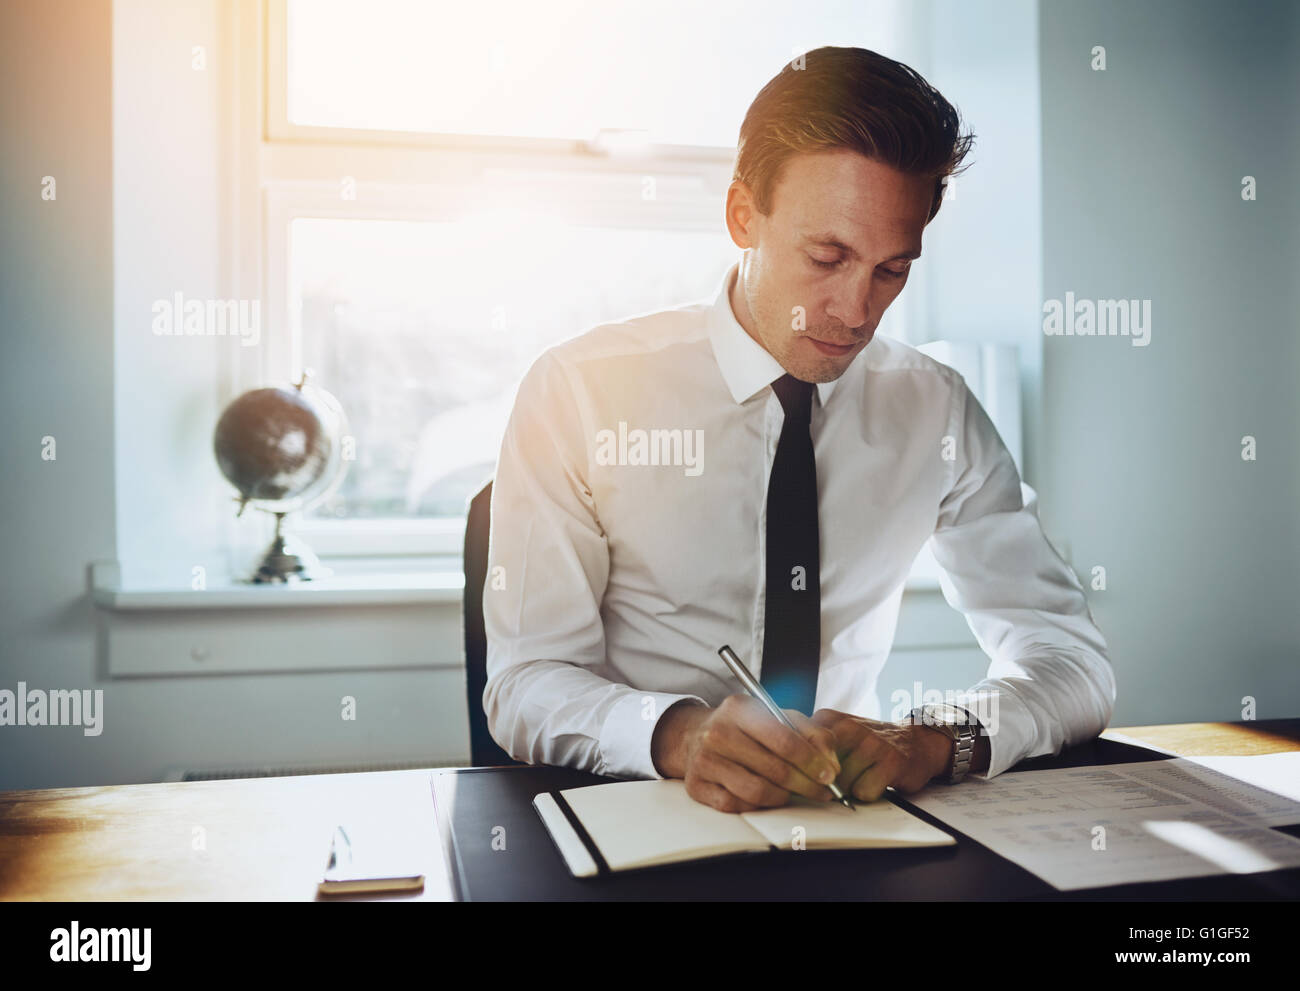 Executive business man working at office writing in a calendar and looking seriously Stock Photo